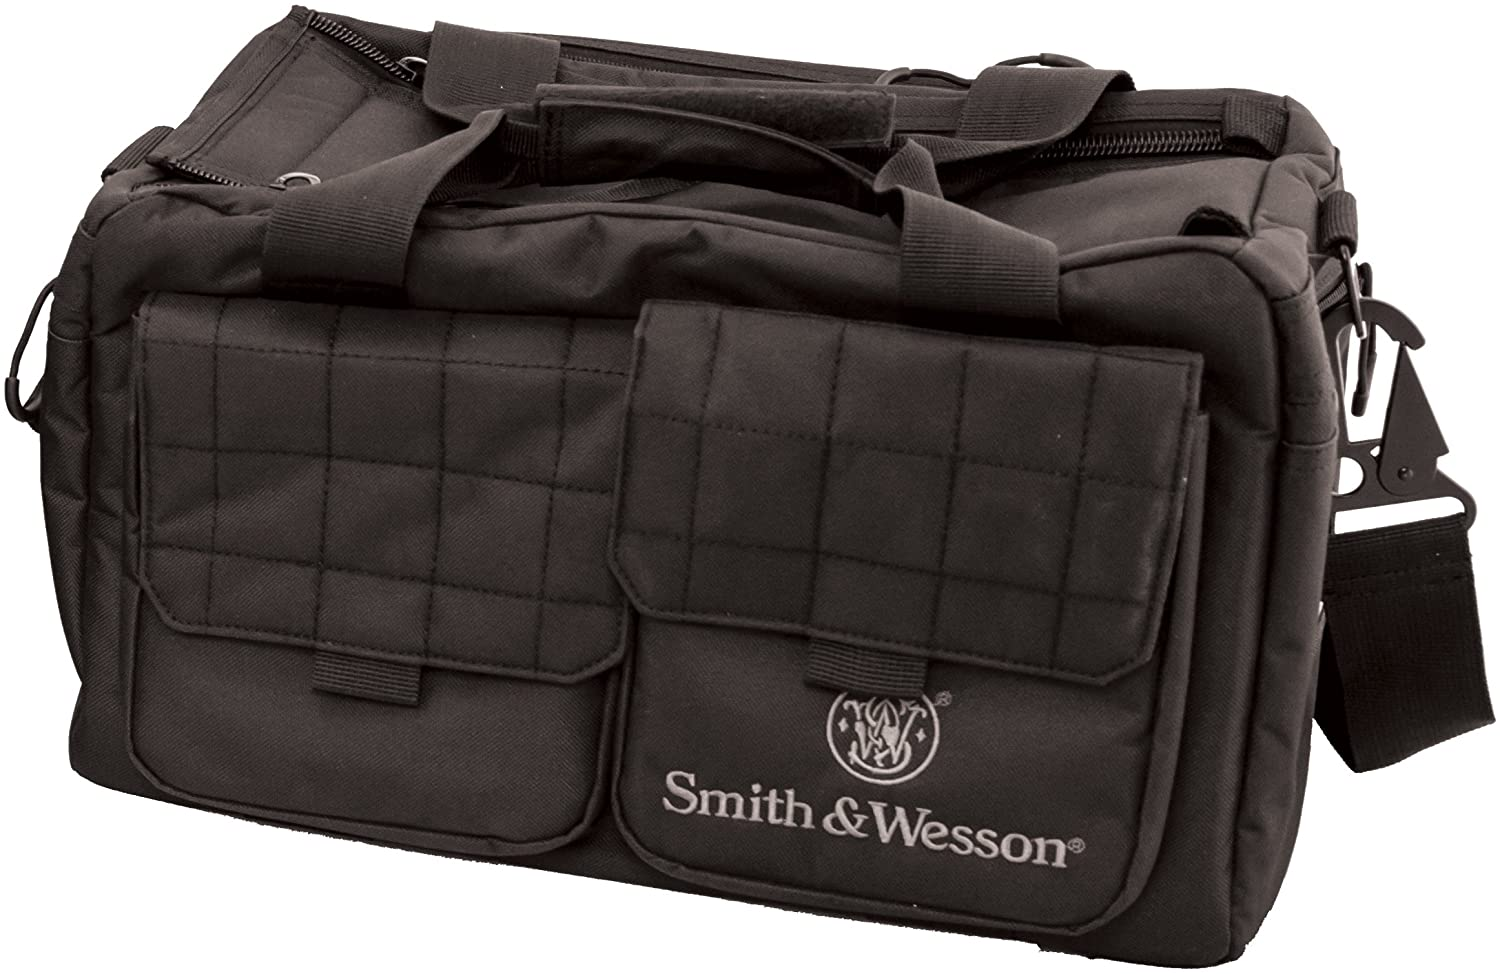 Photo of a range bag from Smith&Wesson, black color, with two front pockets and a shoulder strap.